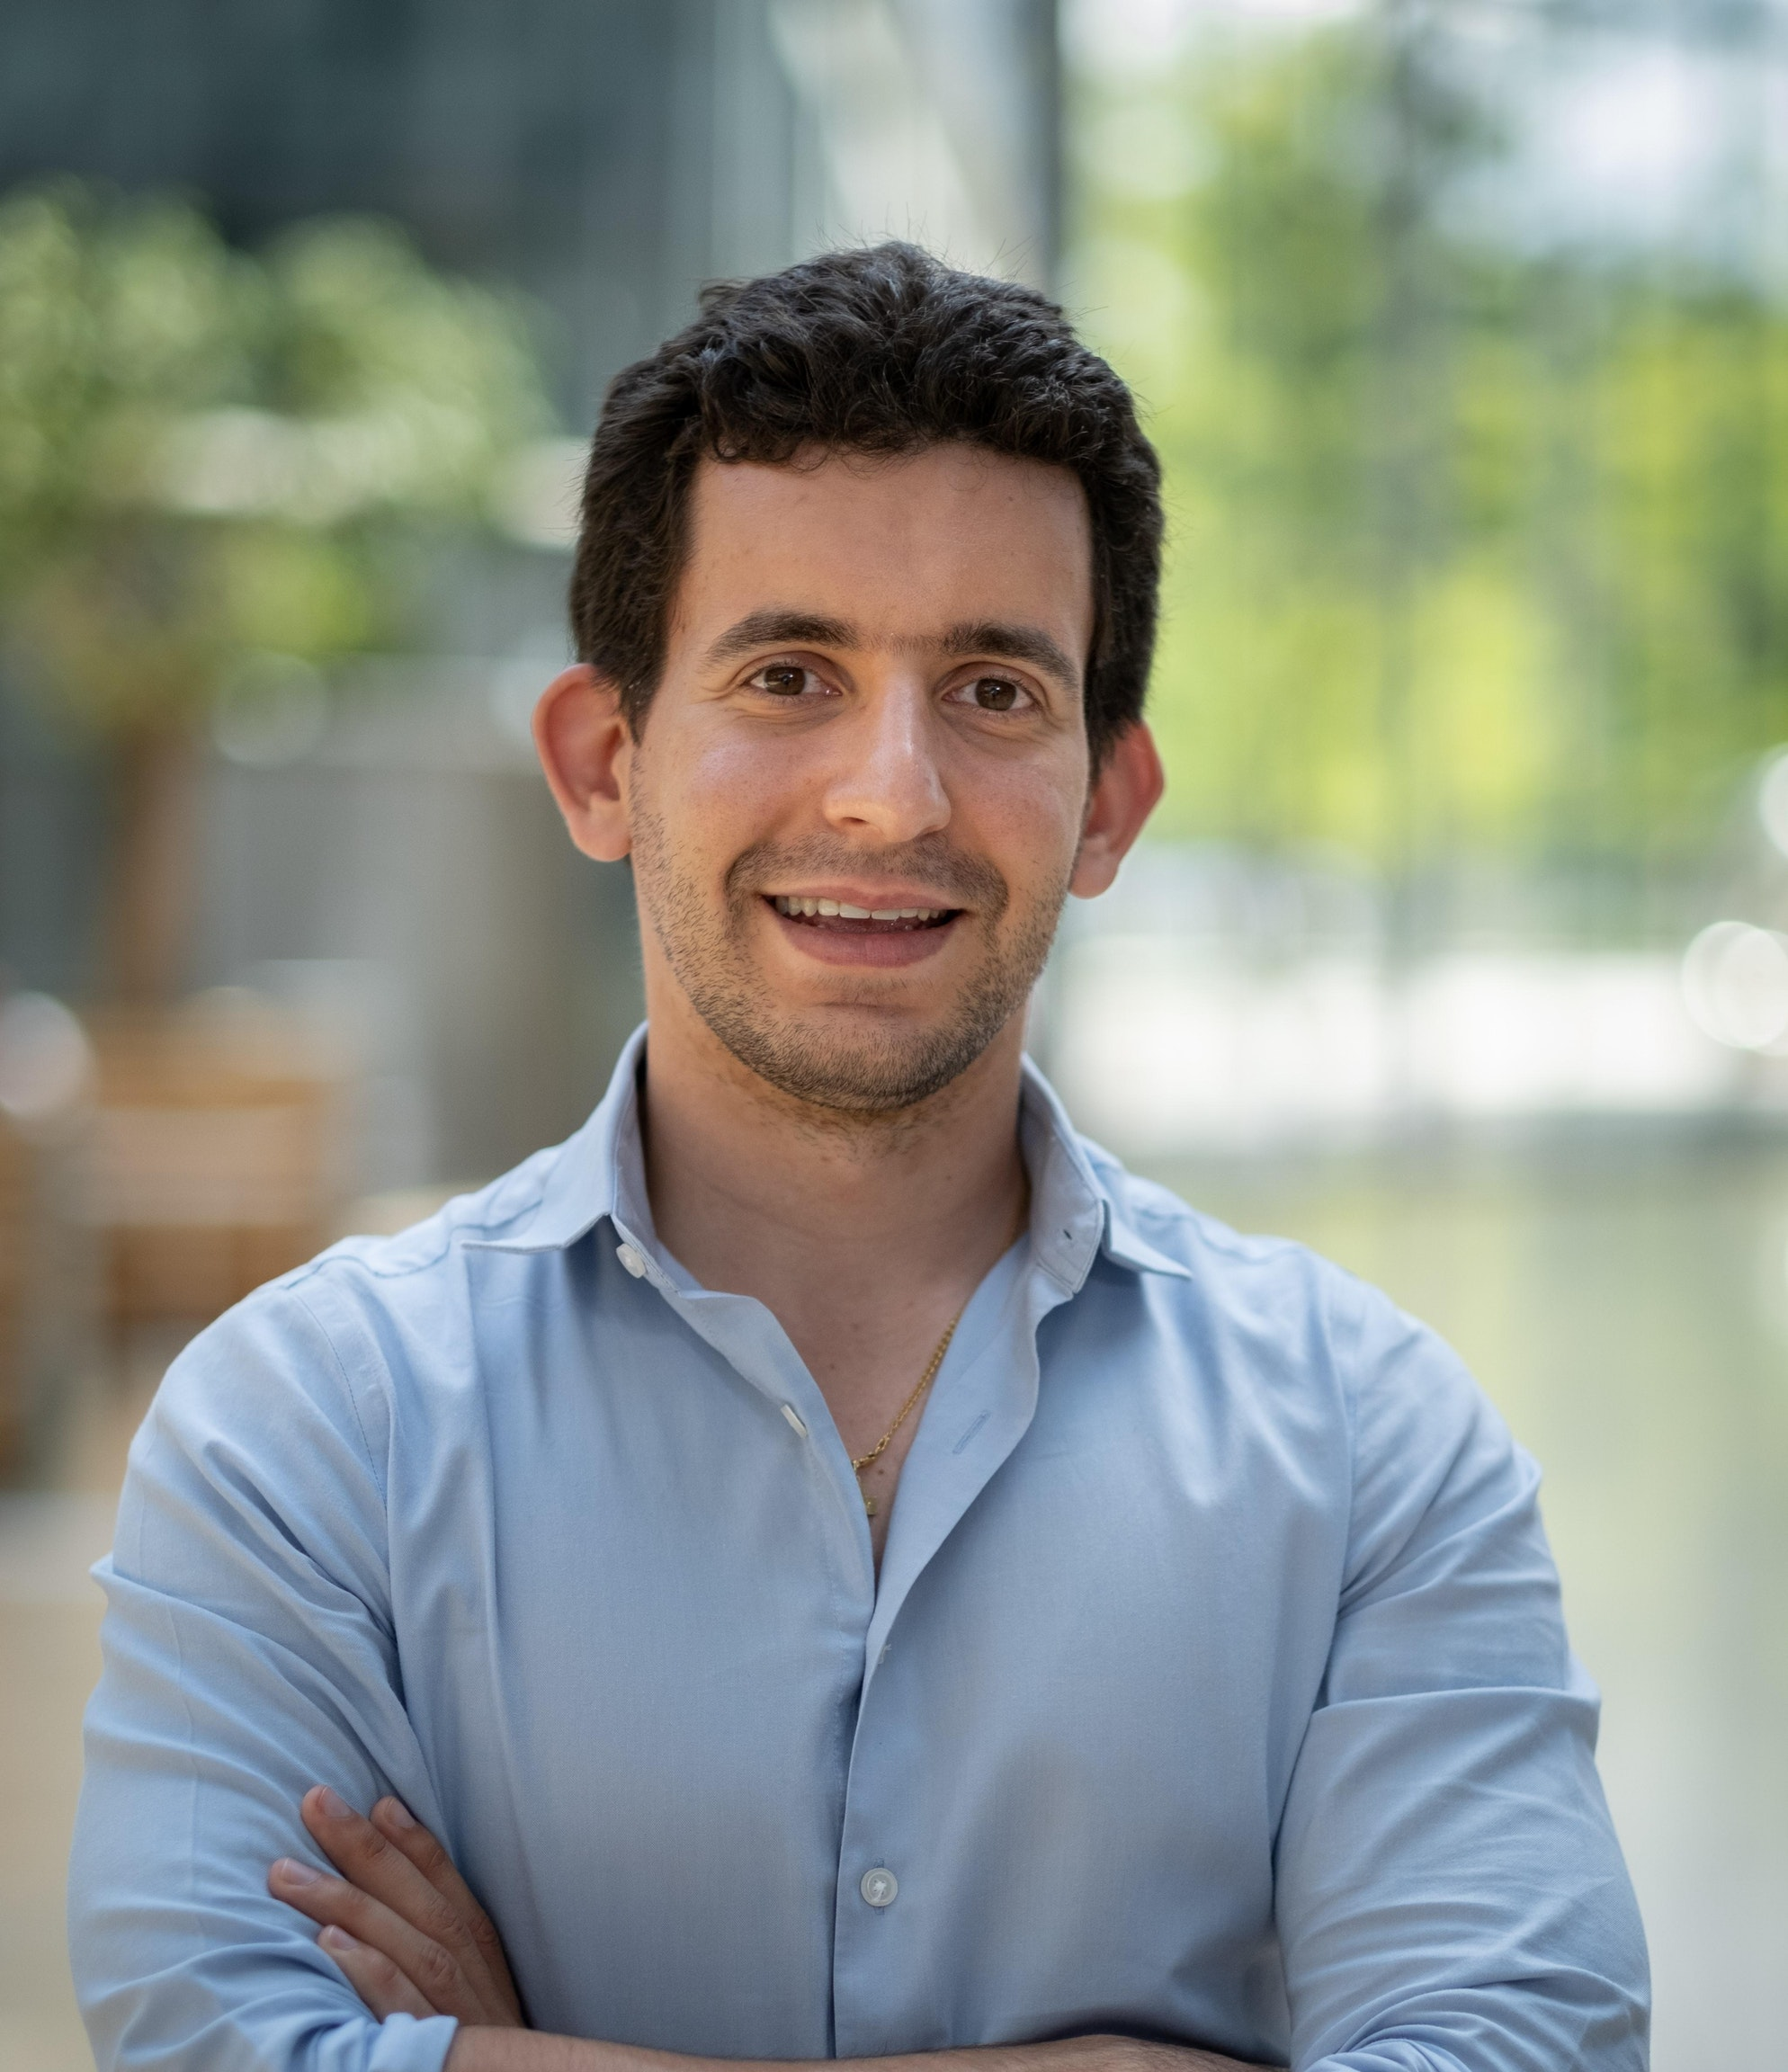 Meet Venture Leader Nicolas Vachicouras and find out his secret to making decisions